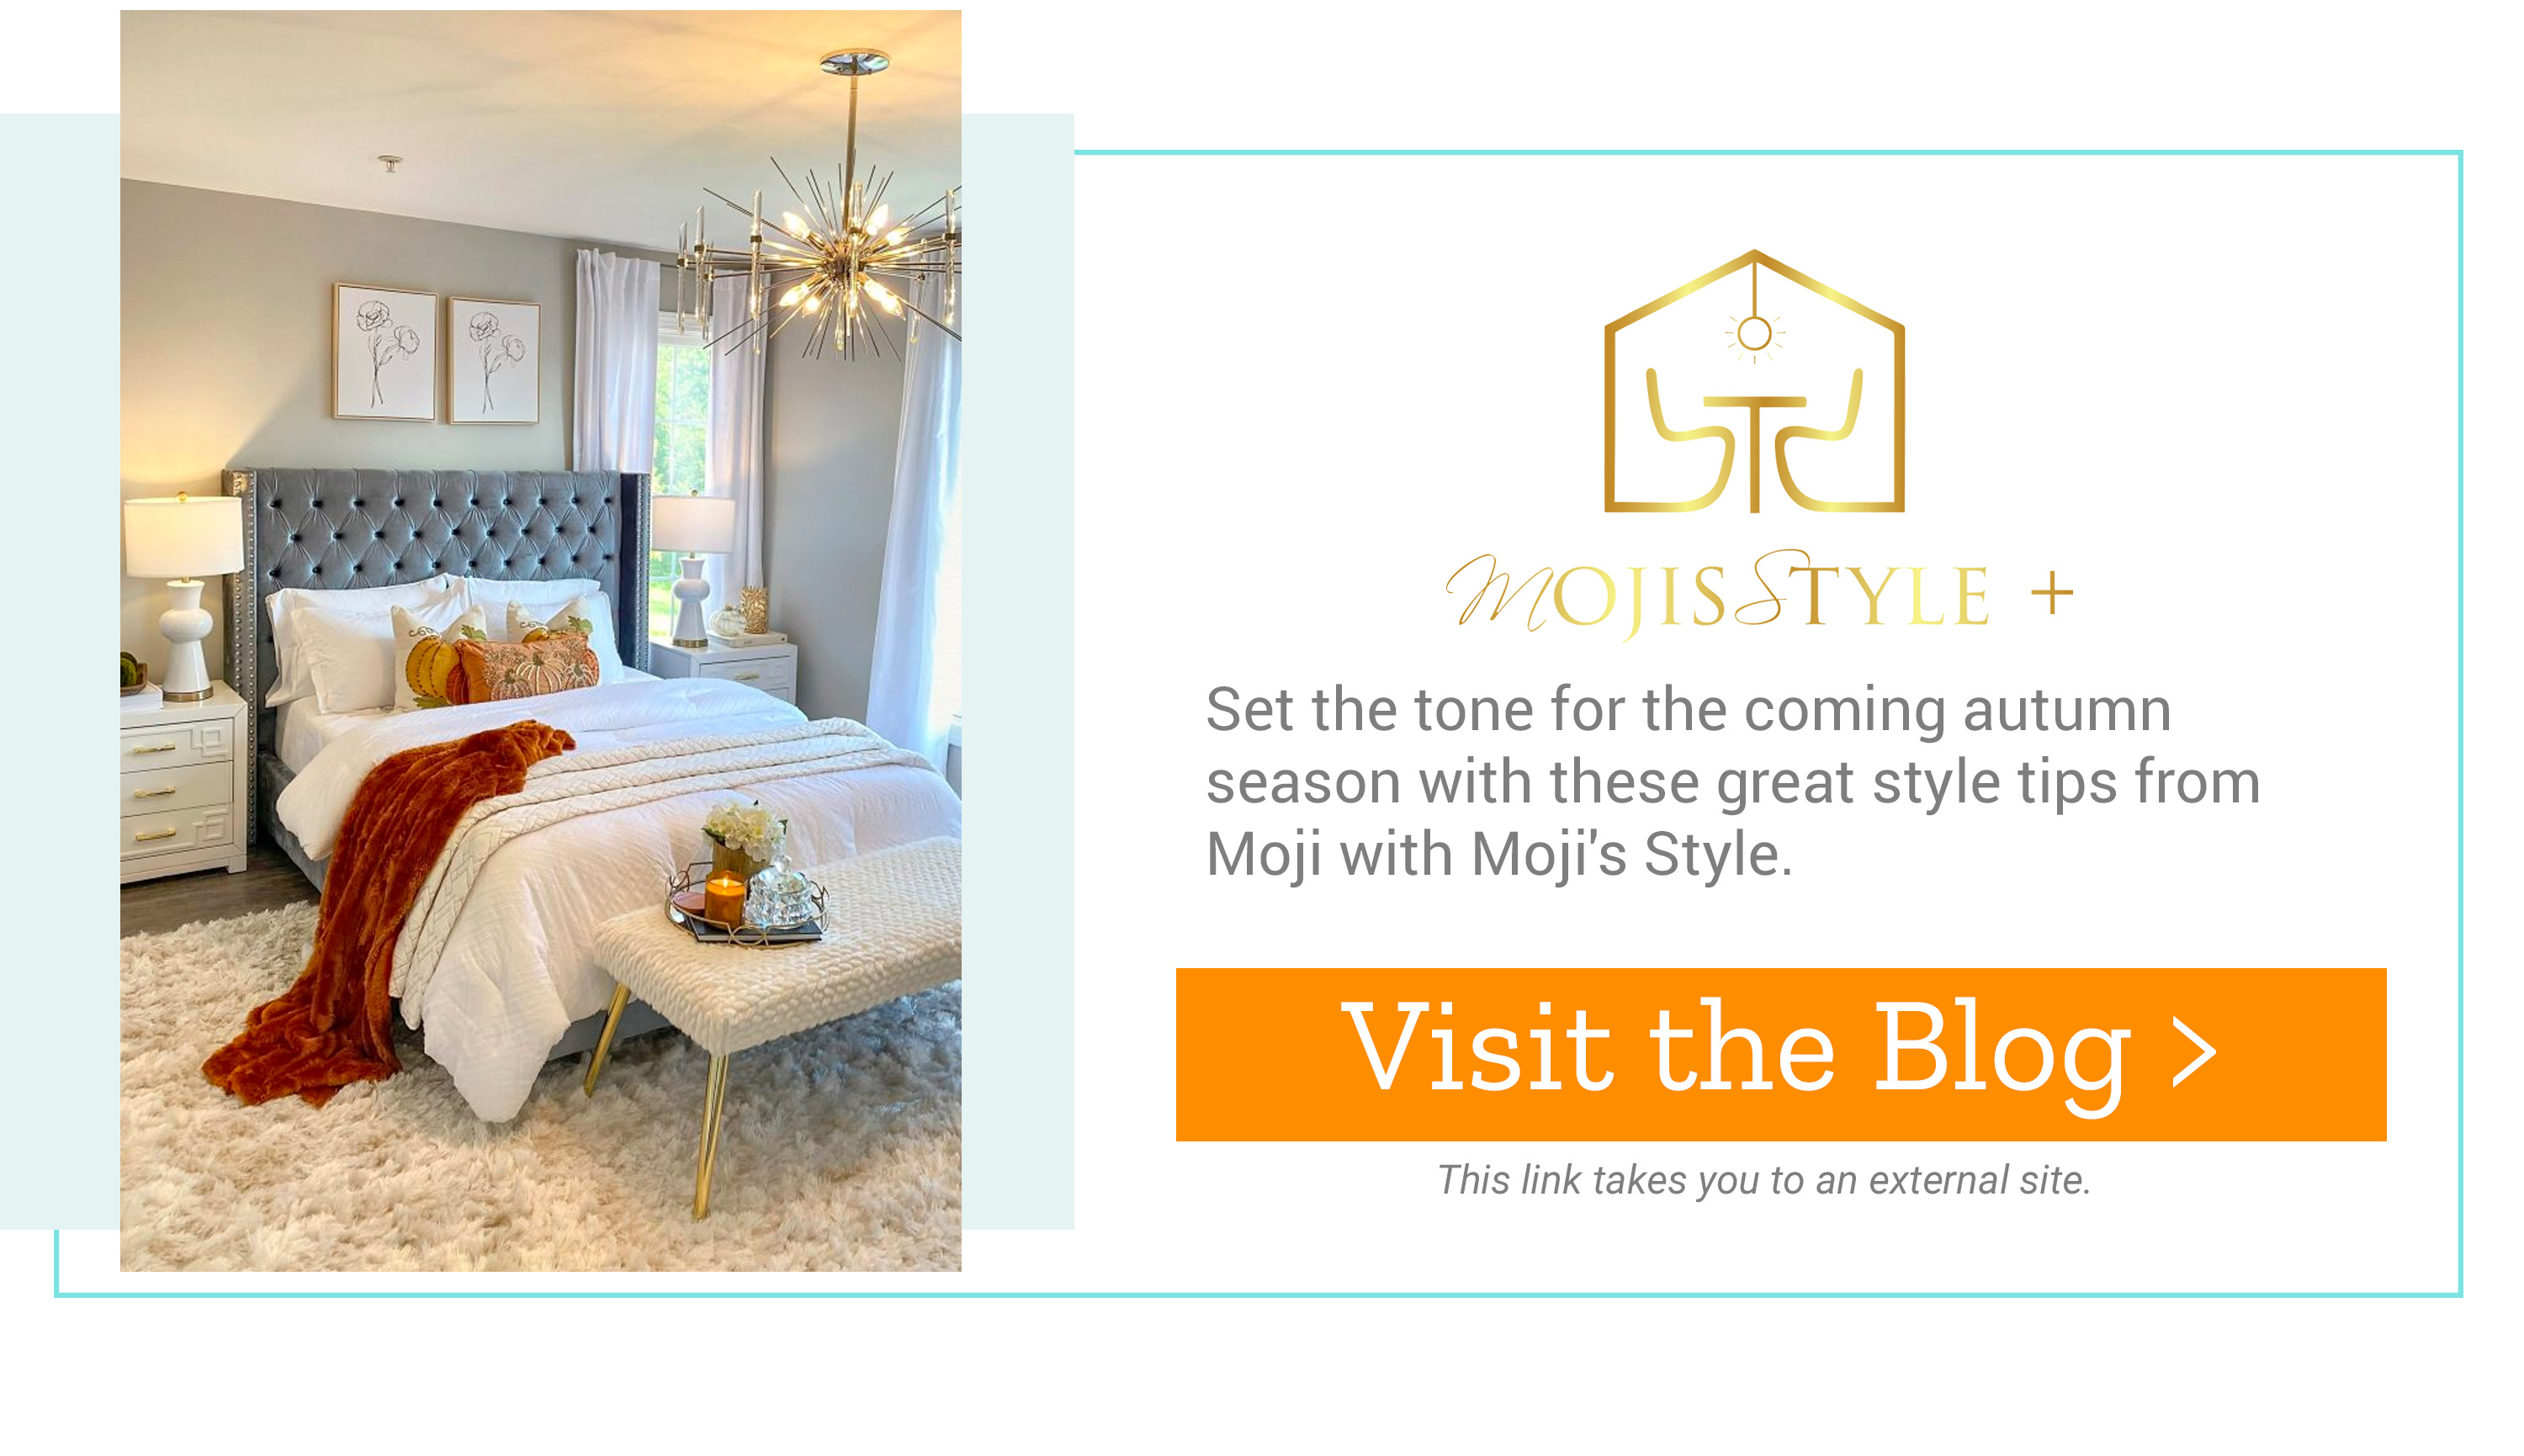 Moji's Style - Set the tone for the coming autumn season with these great style tips from Moji with Moji's Style. Visit the Blog >